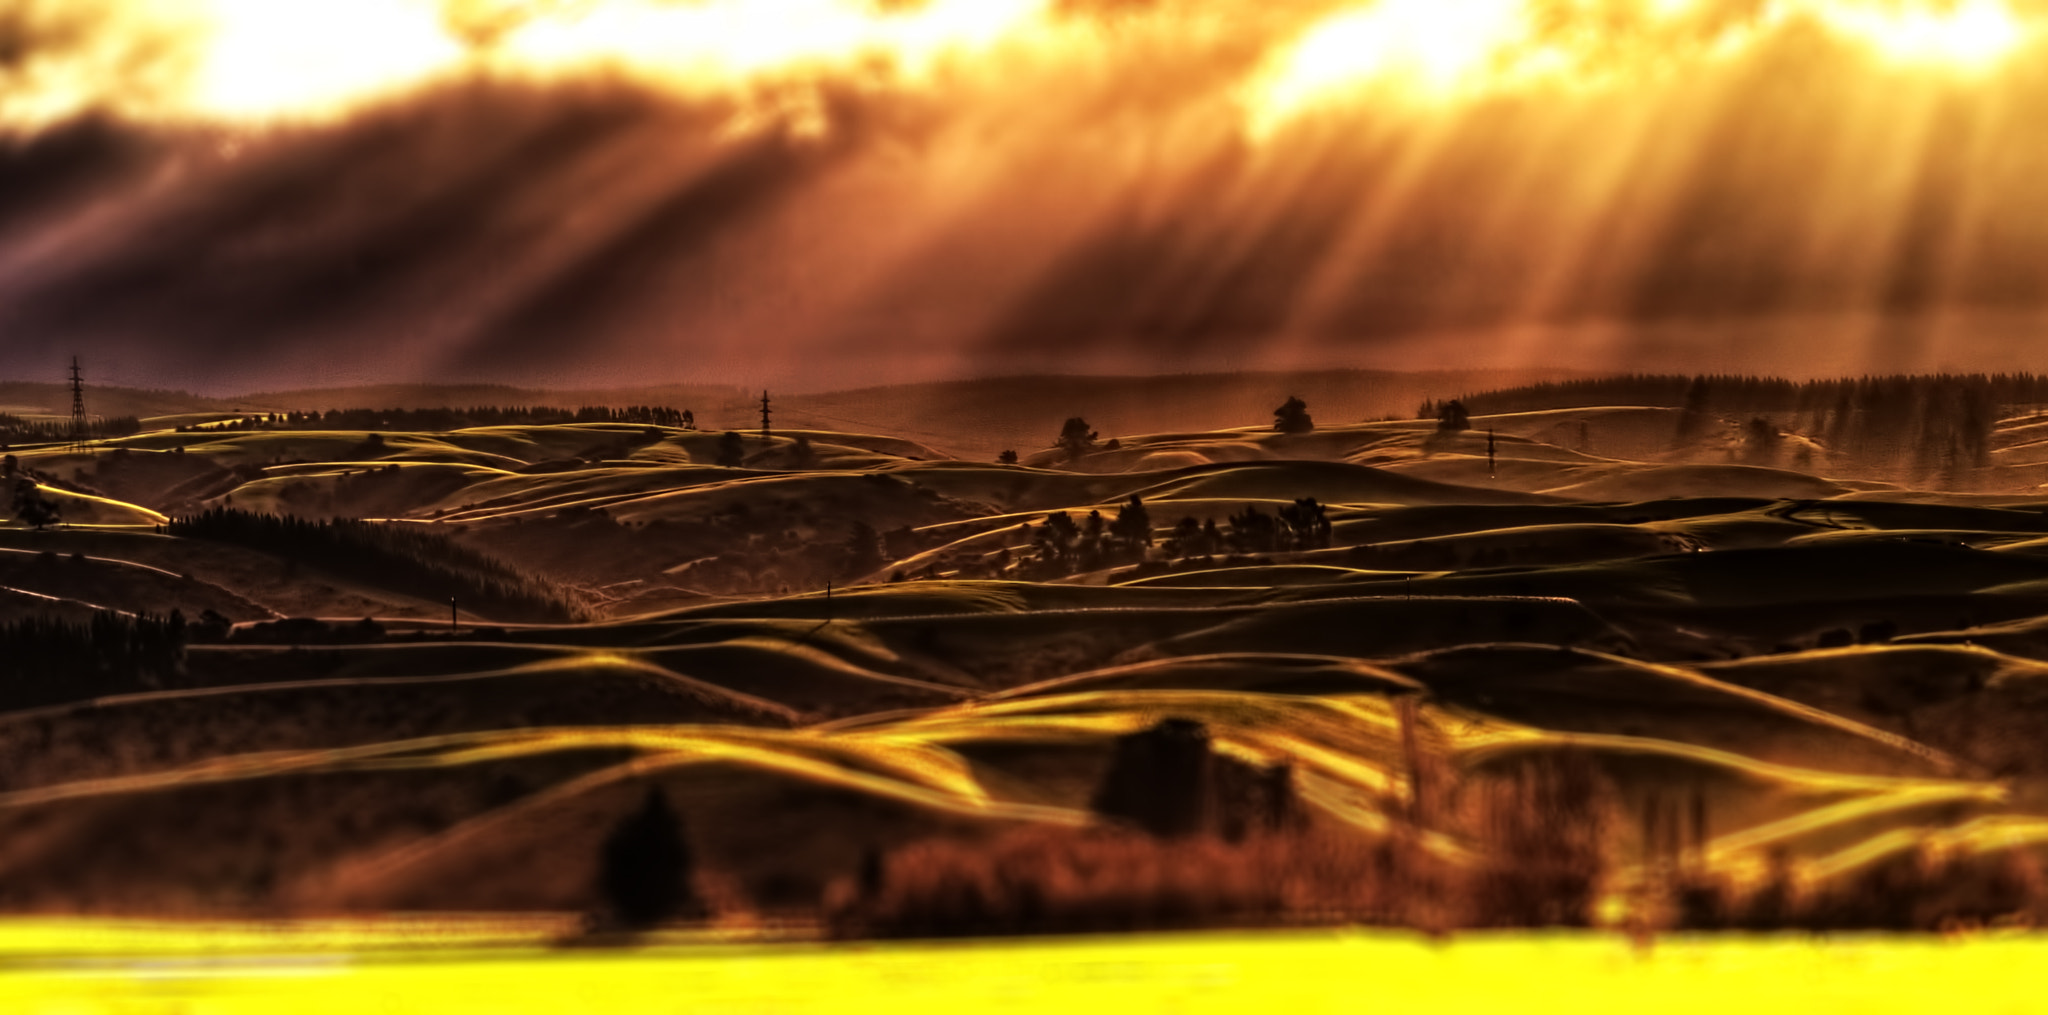 Photograph Shadowland by The Light Foreboding on 500px